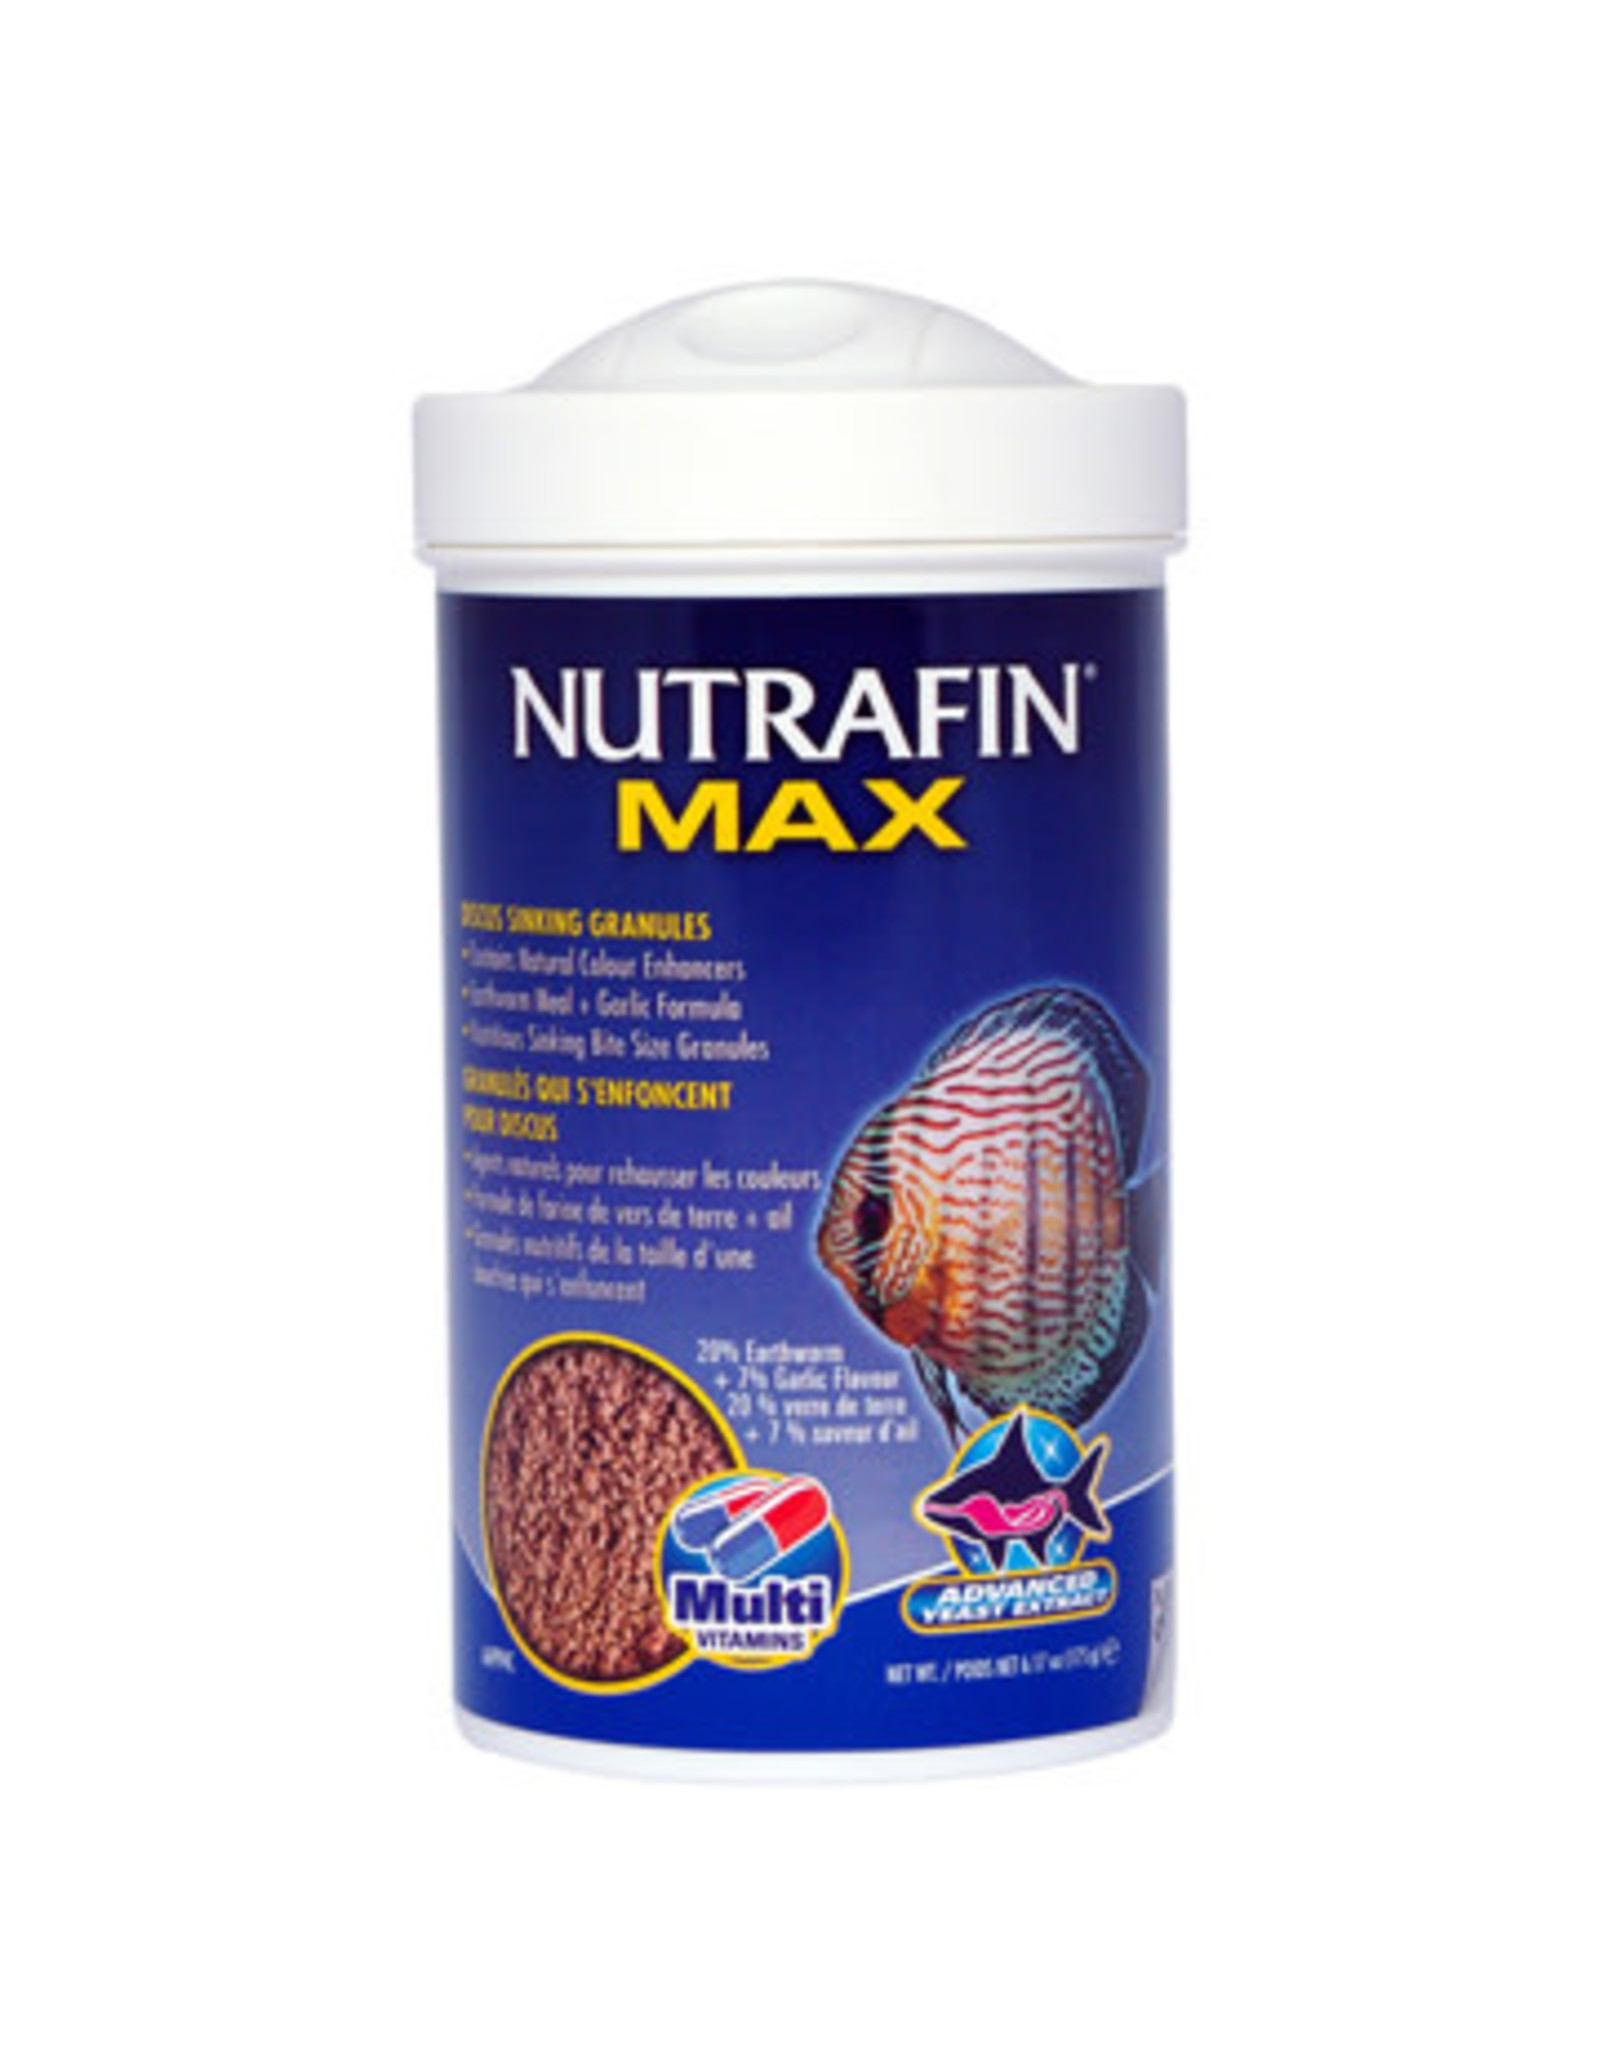 Nutrafin Nutrafin basix Staple Food, 24 g (0.8 oz)